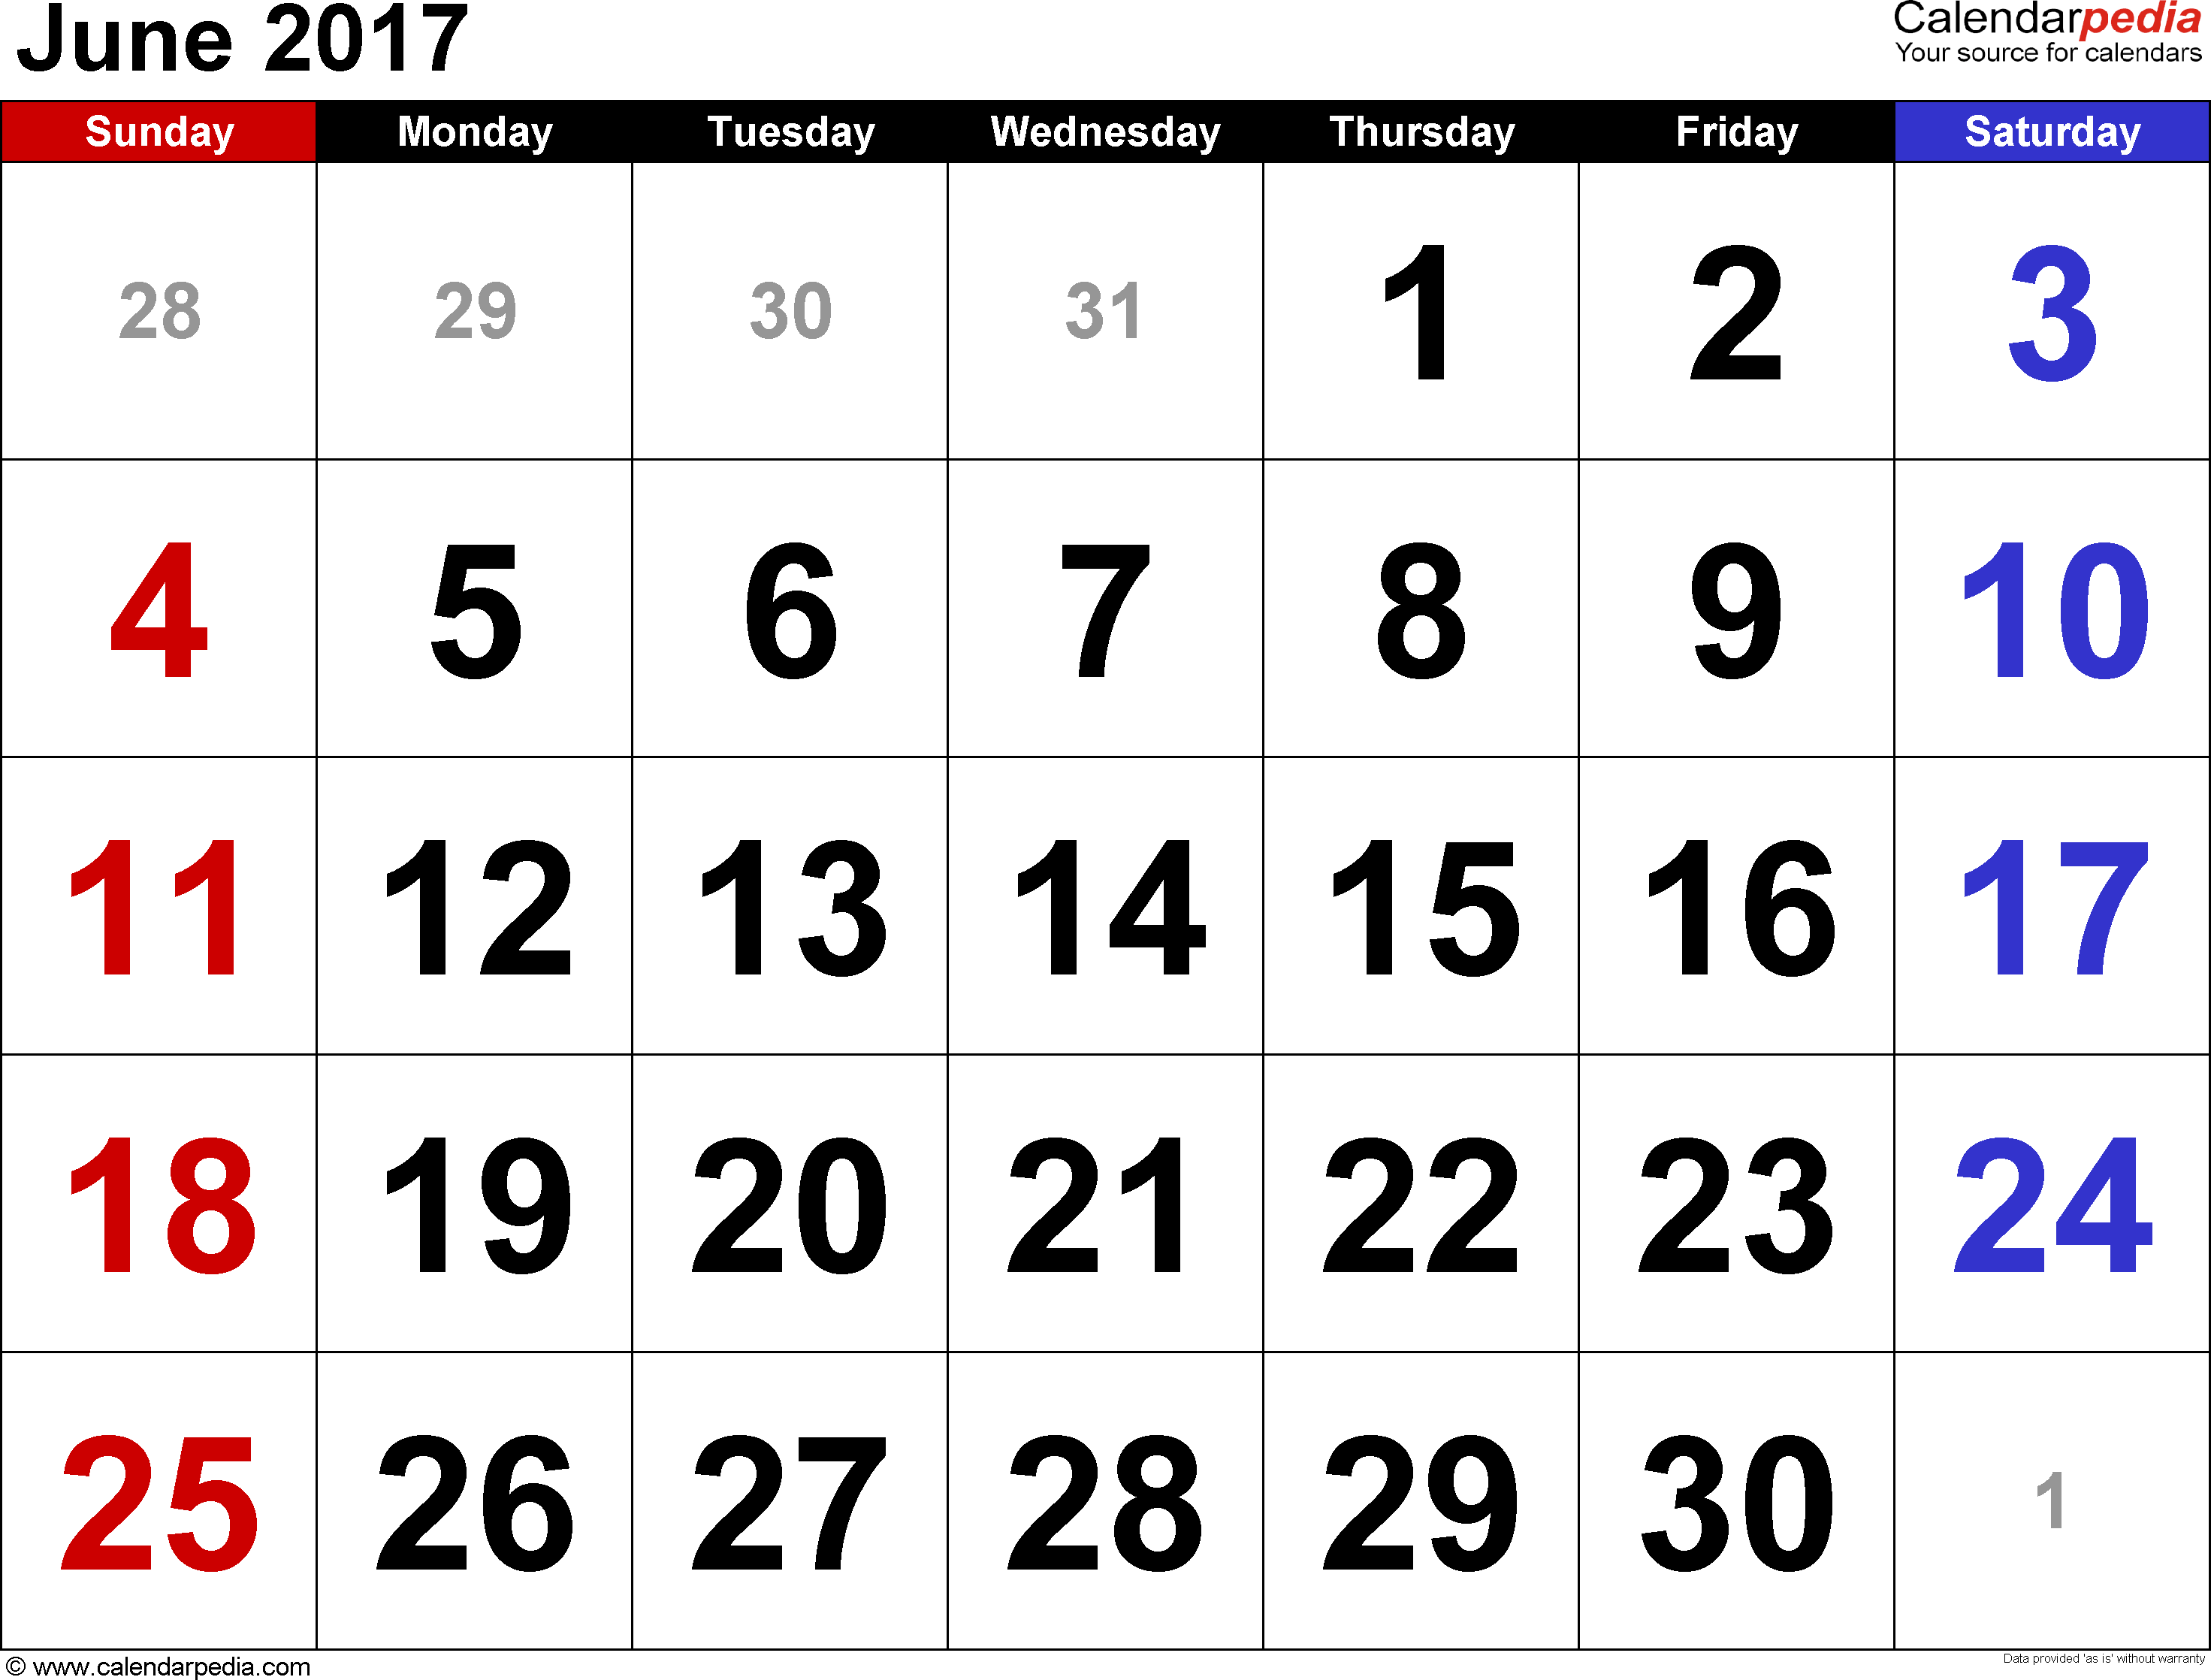 June 2017 calendar, landscape orientation, large numerals, available as printable templates for Word, Excel and PDF